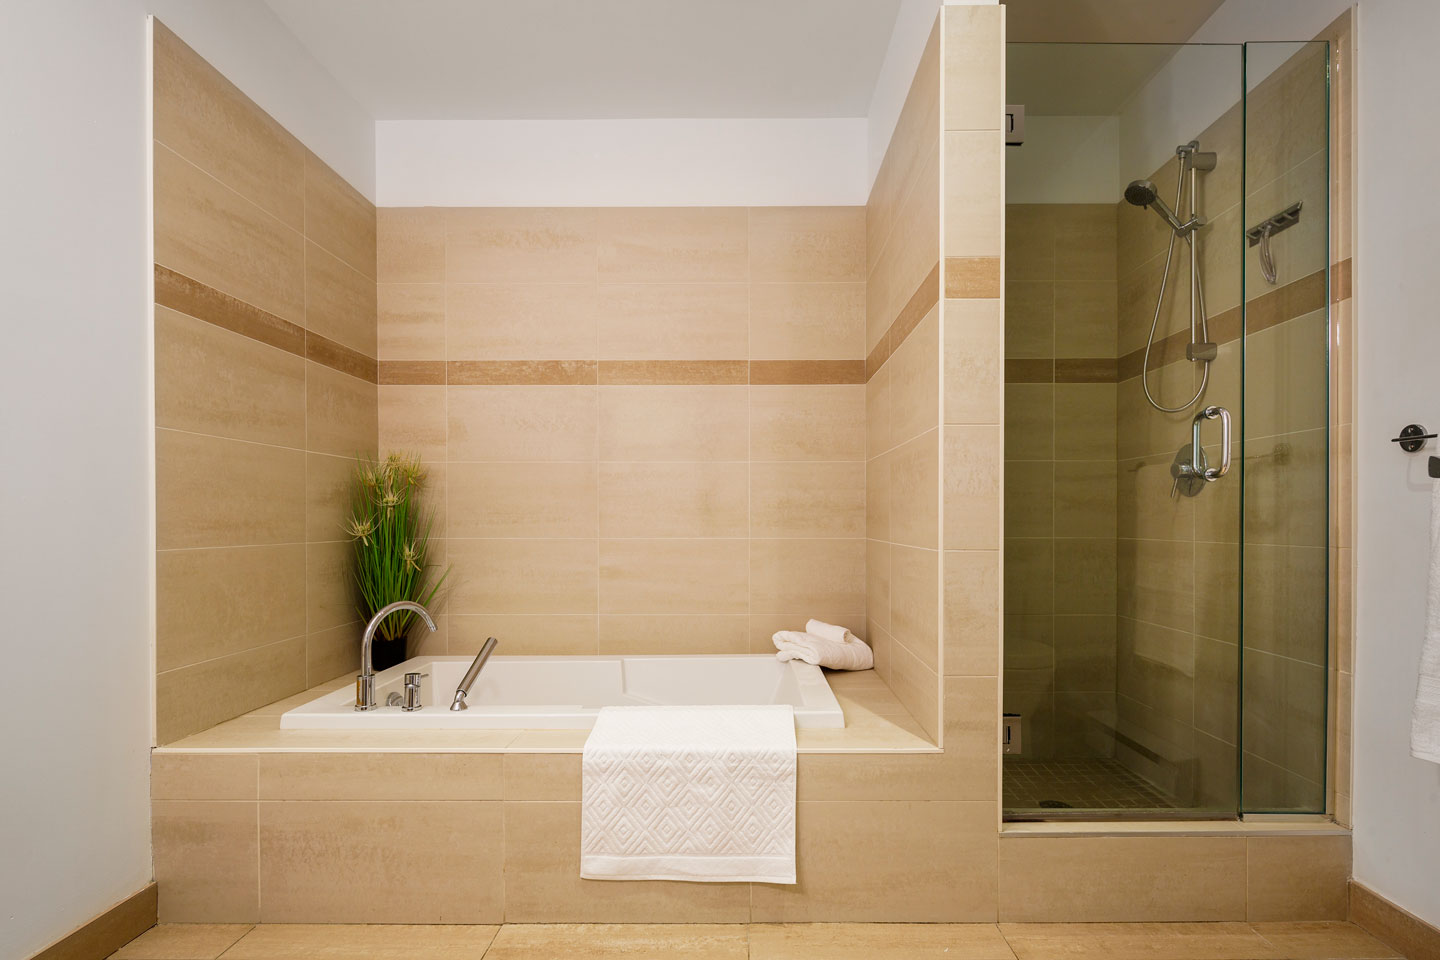 Suite 103: bathroom with large tub and walk-in shower